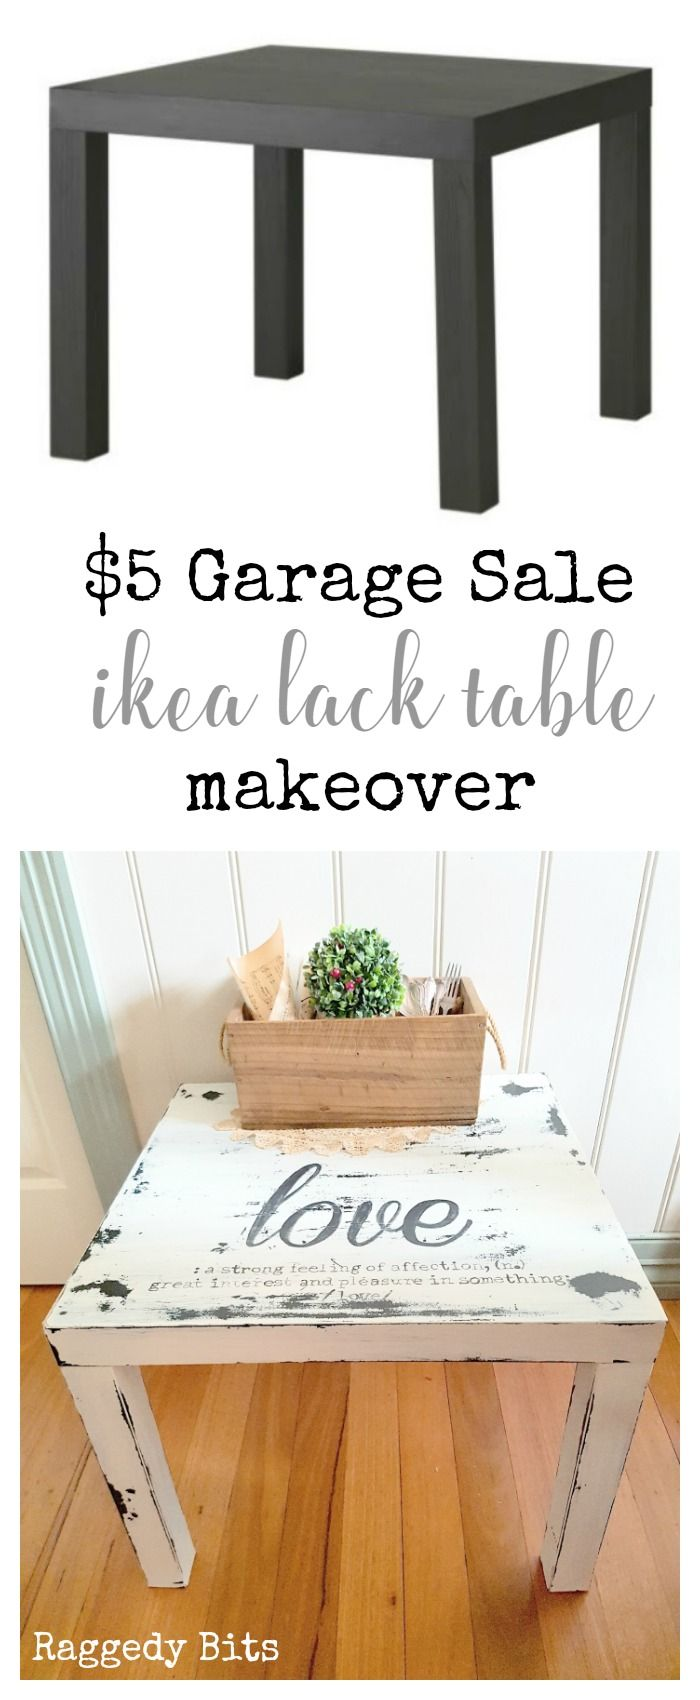 See how easy it is to turn a old ikea find at a garage sale into something that will add some farmhouse charm to your home | The $5 Garage Sale Ikea Lack Make Over | www.raggedy-bits.com